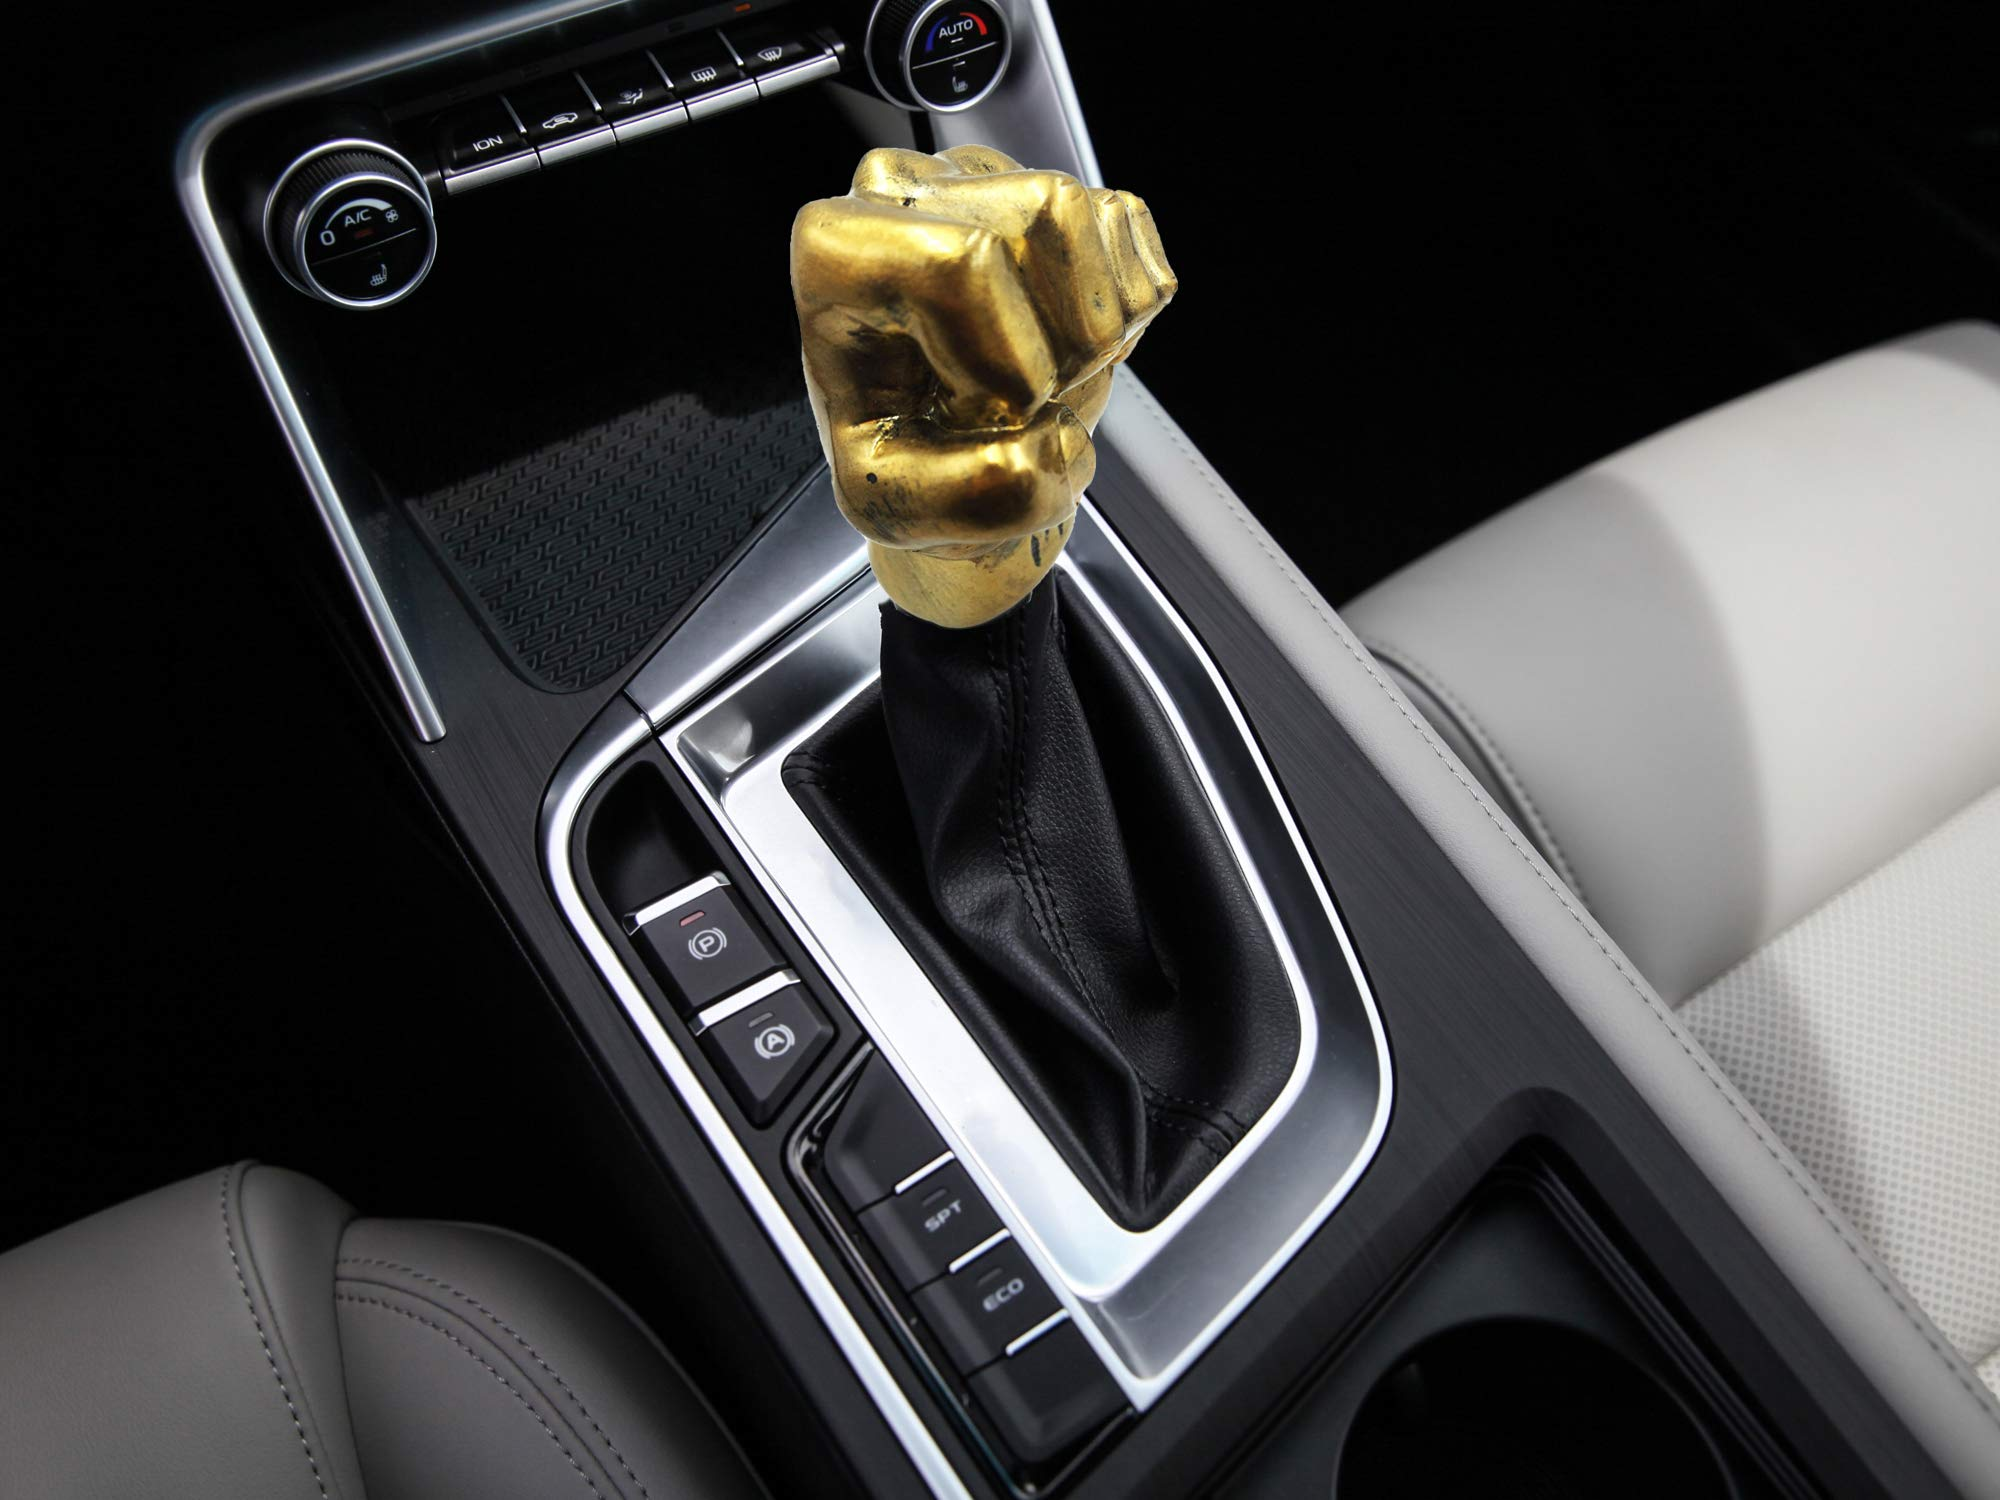 Silver Line Abfer Shift Knob 5 Speed Manual Leather Car Gear Shift Head Shifter Lever Stick